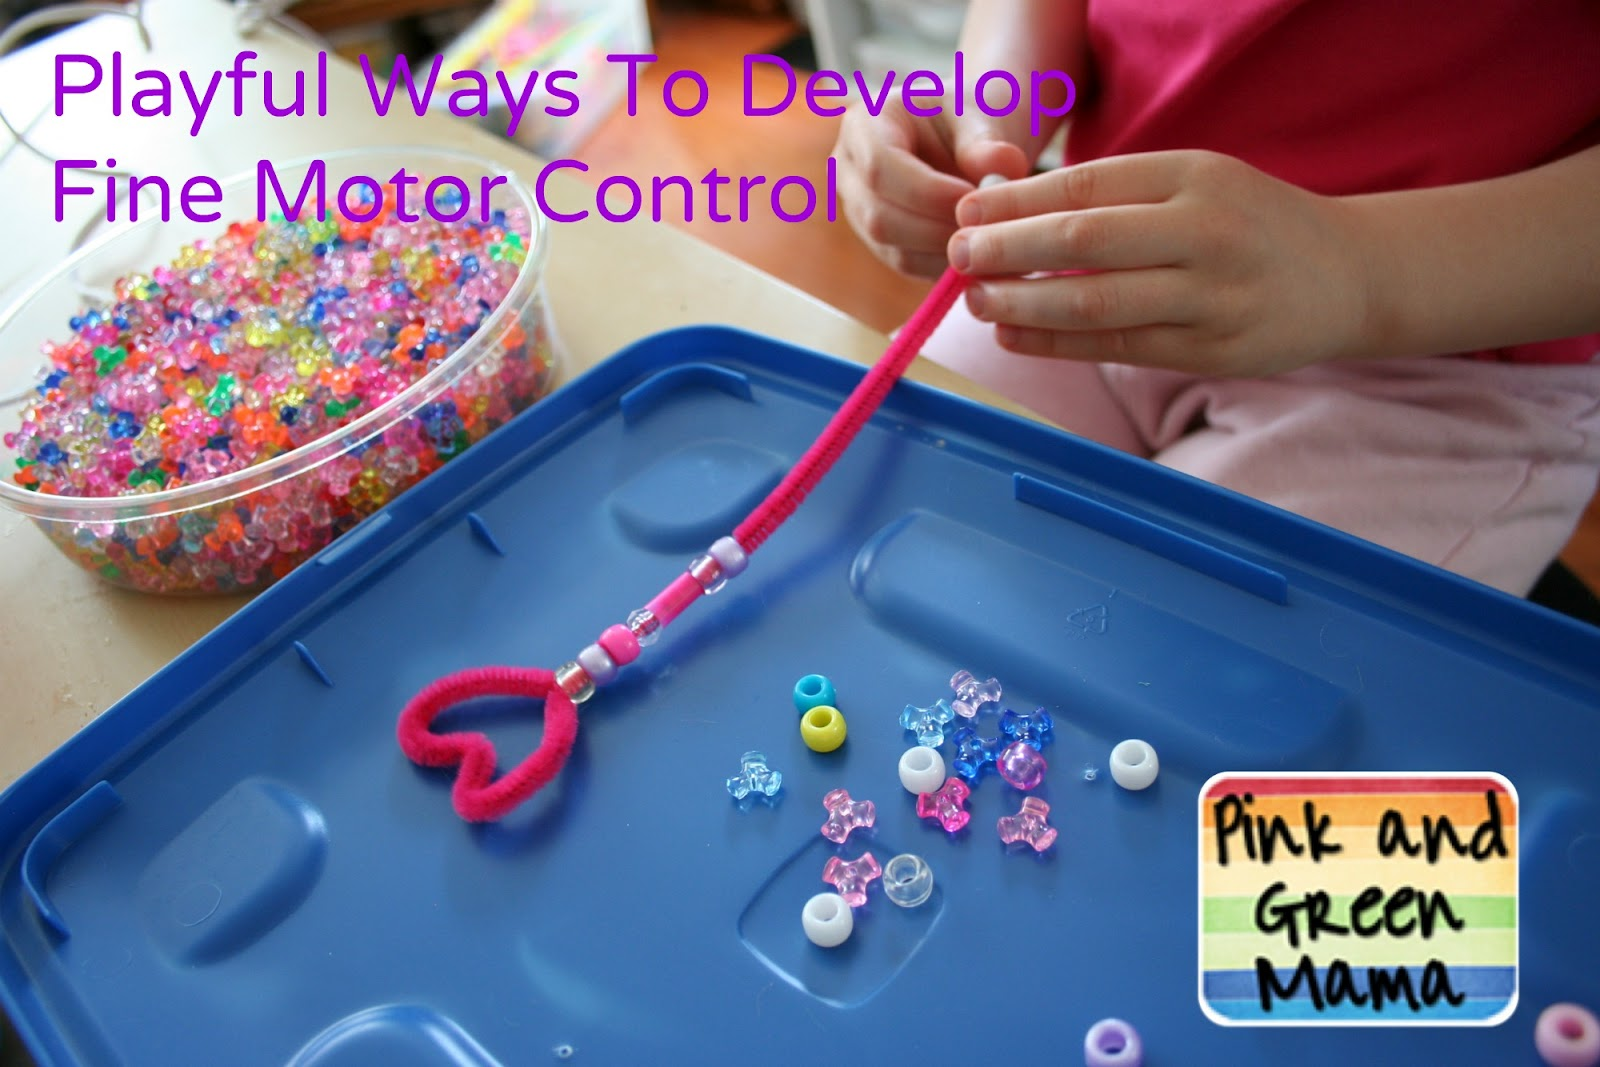 What is fine motor control